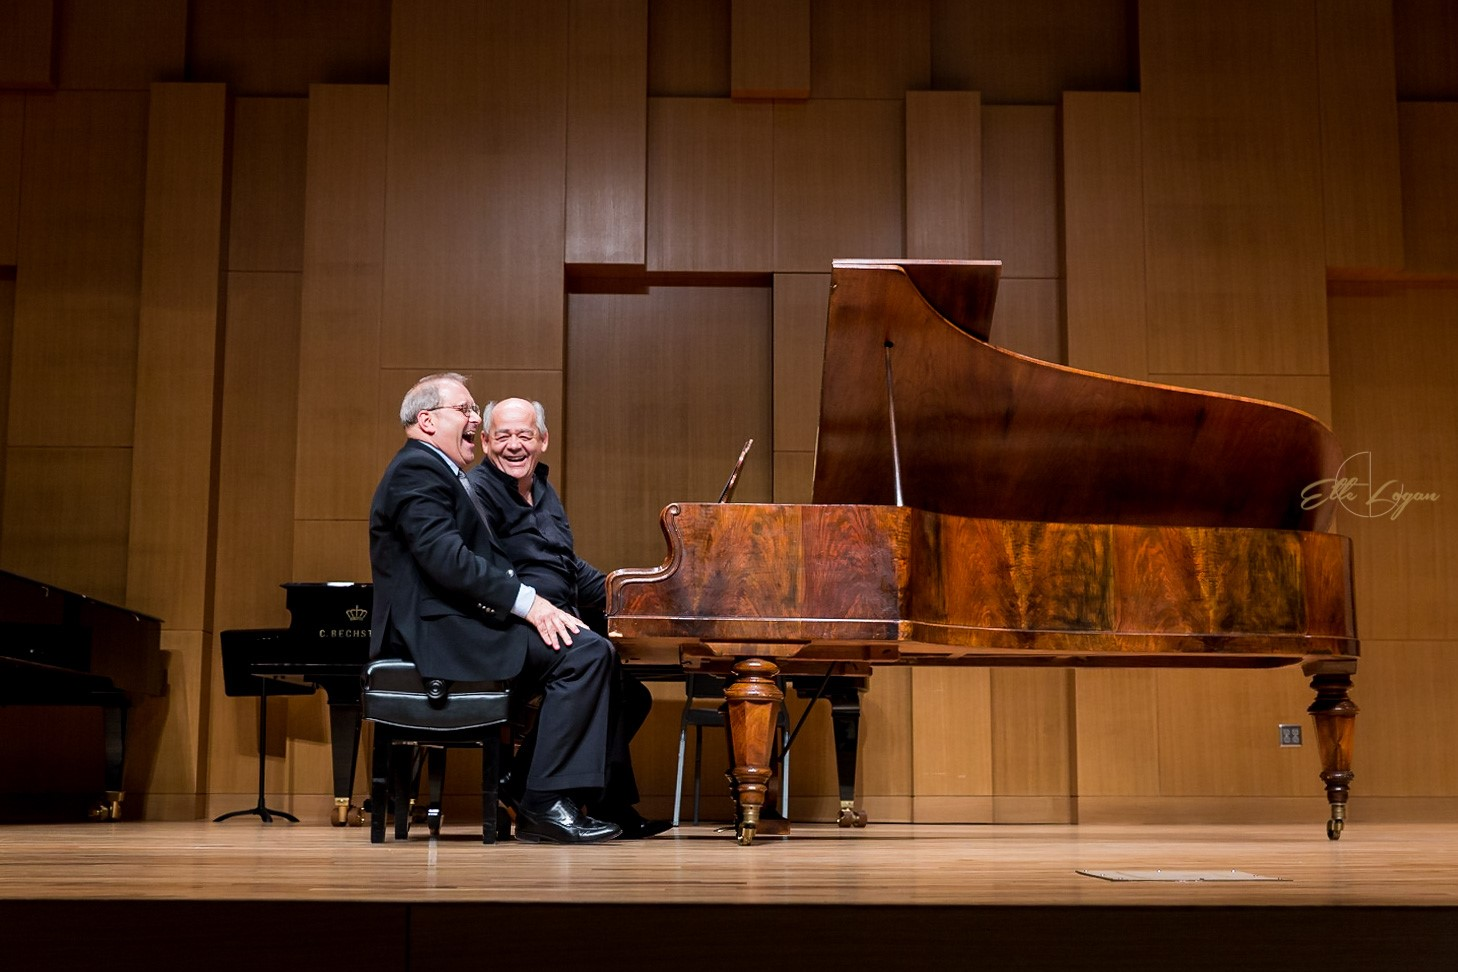 Steven Harlos, UNT piano professor and chair of keyboard studies, and Christoph Hammer, fortepiano professor, perform on an 1870 Stretcher piano at the 2016 CollabFest. 